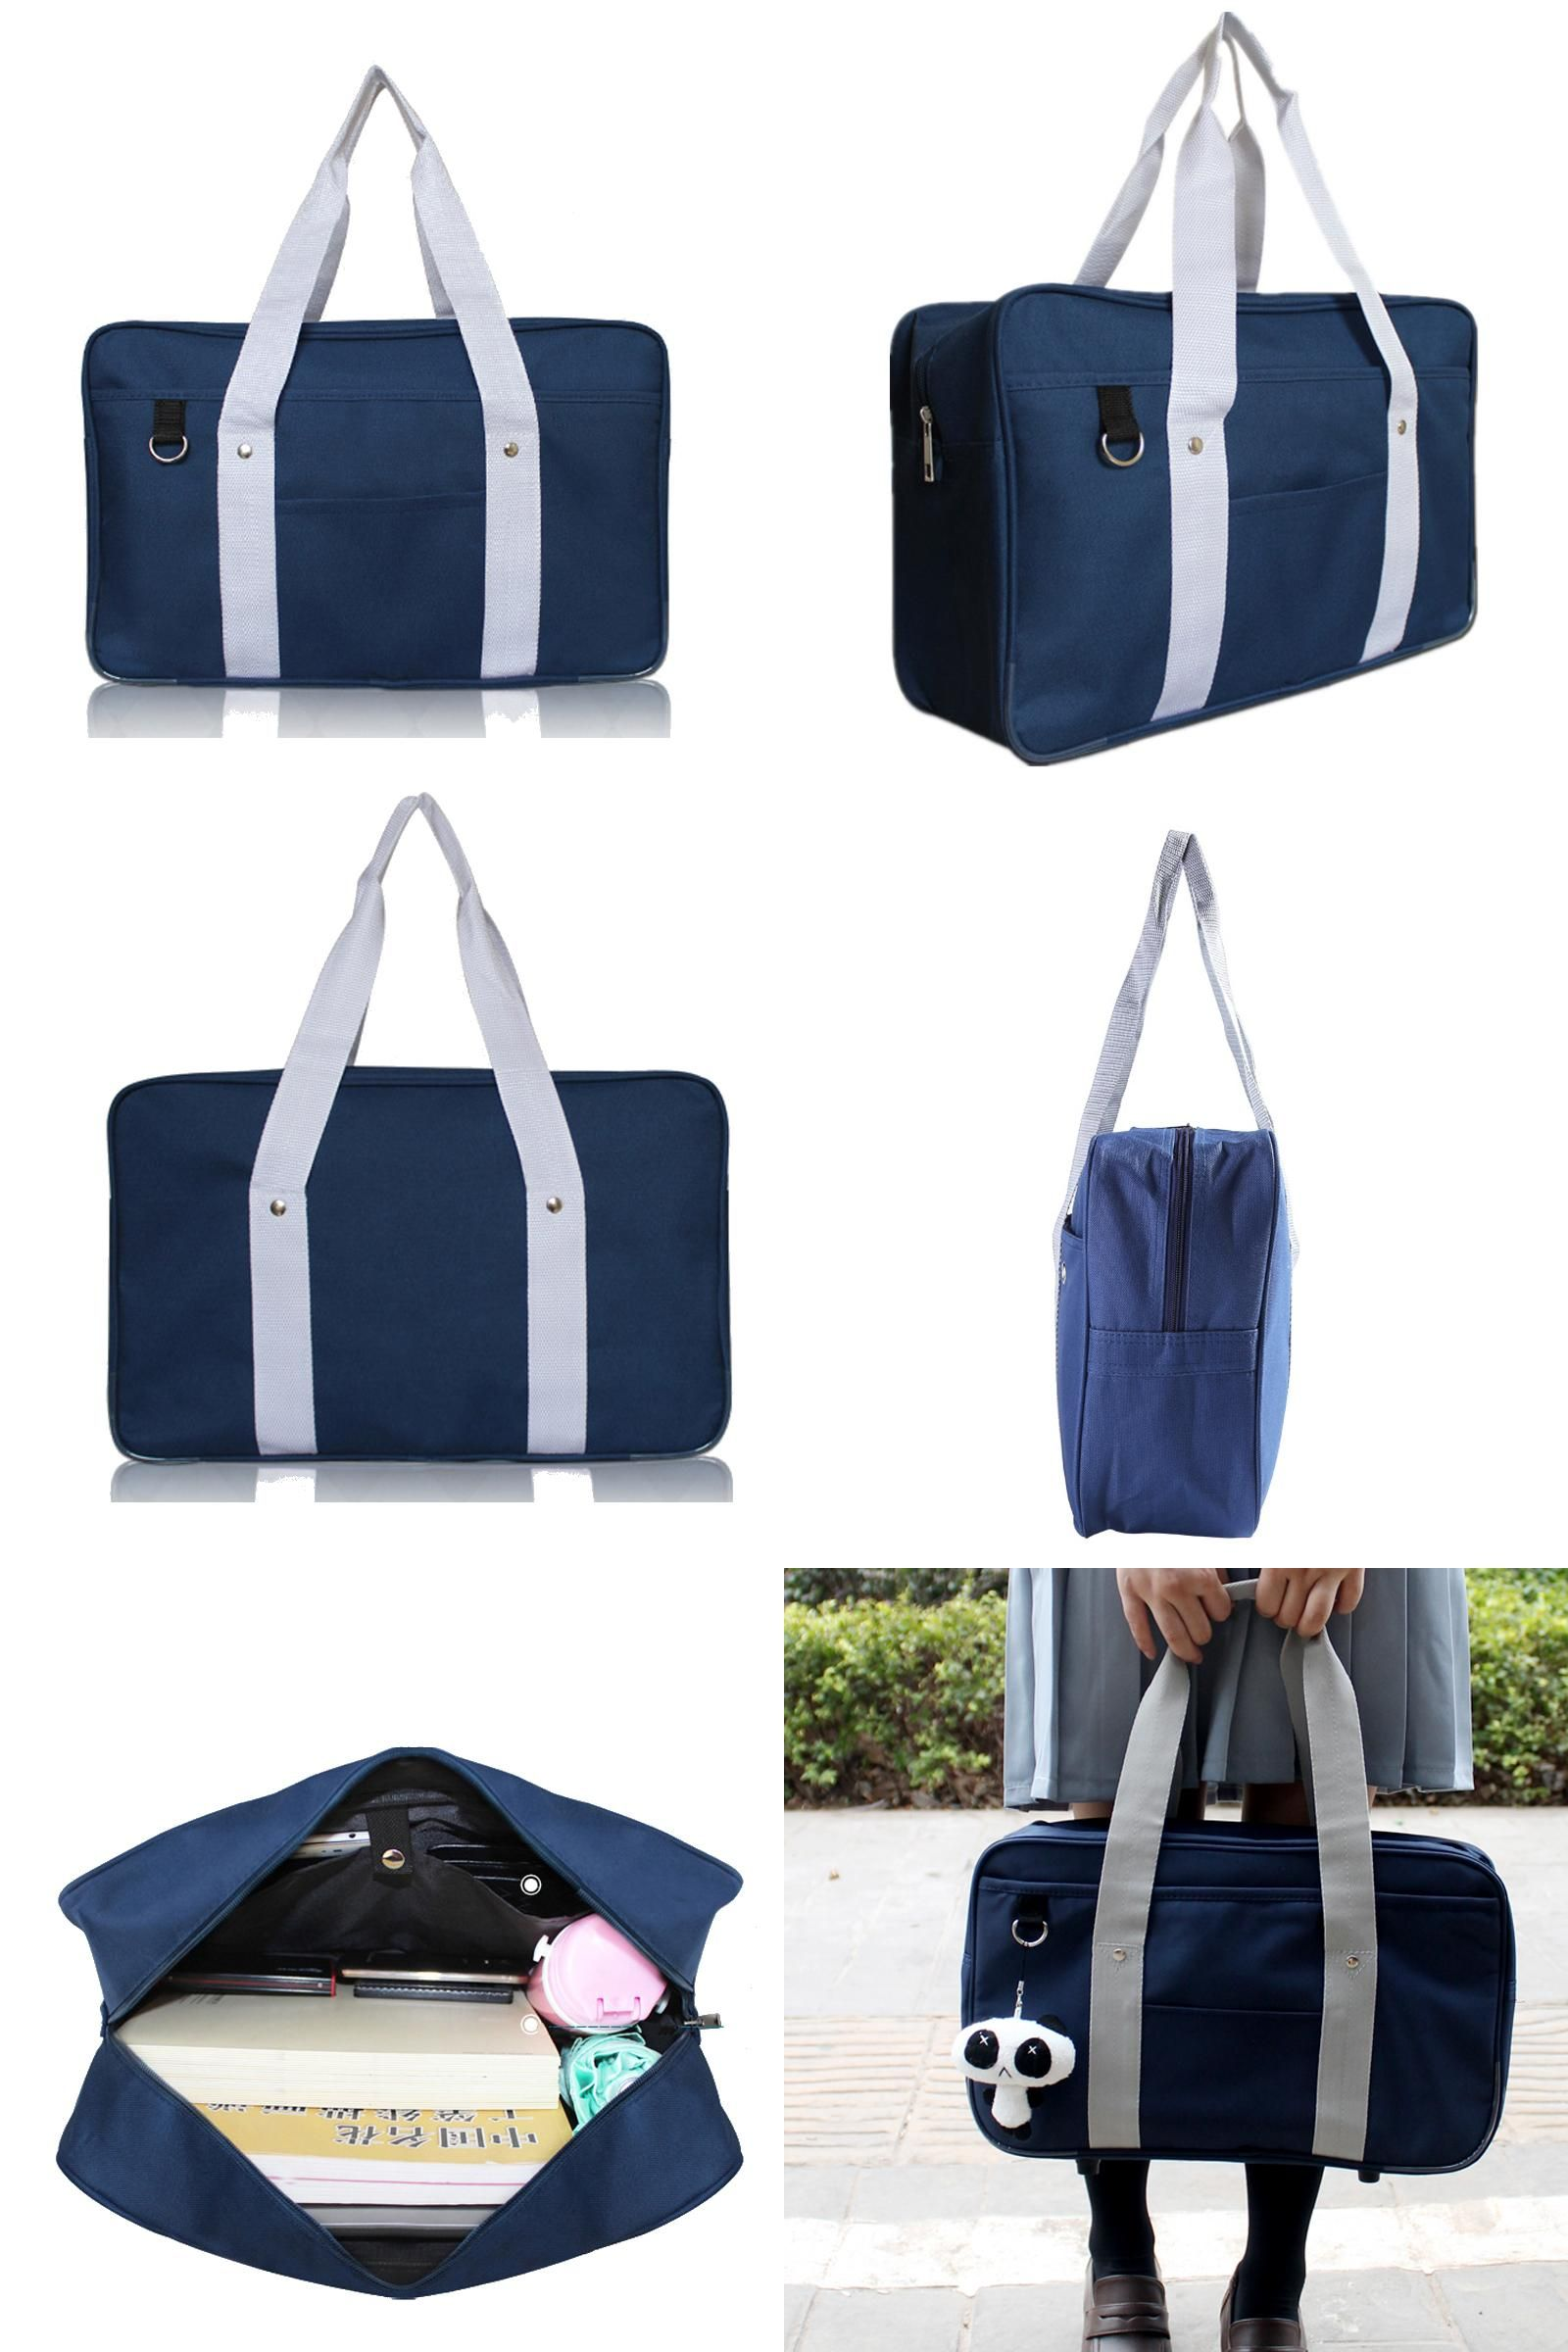 8d0166030571  Visit to Buy  Japanese School Bags Large Capacity Portable Handbags  Shoulder Bag For Youth